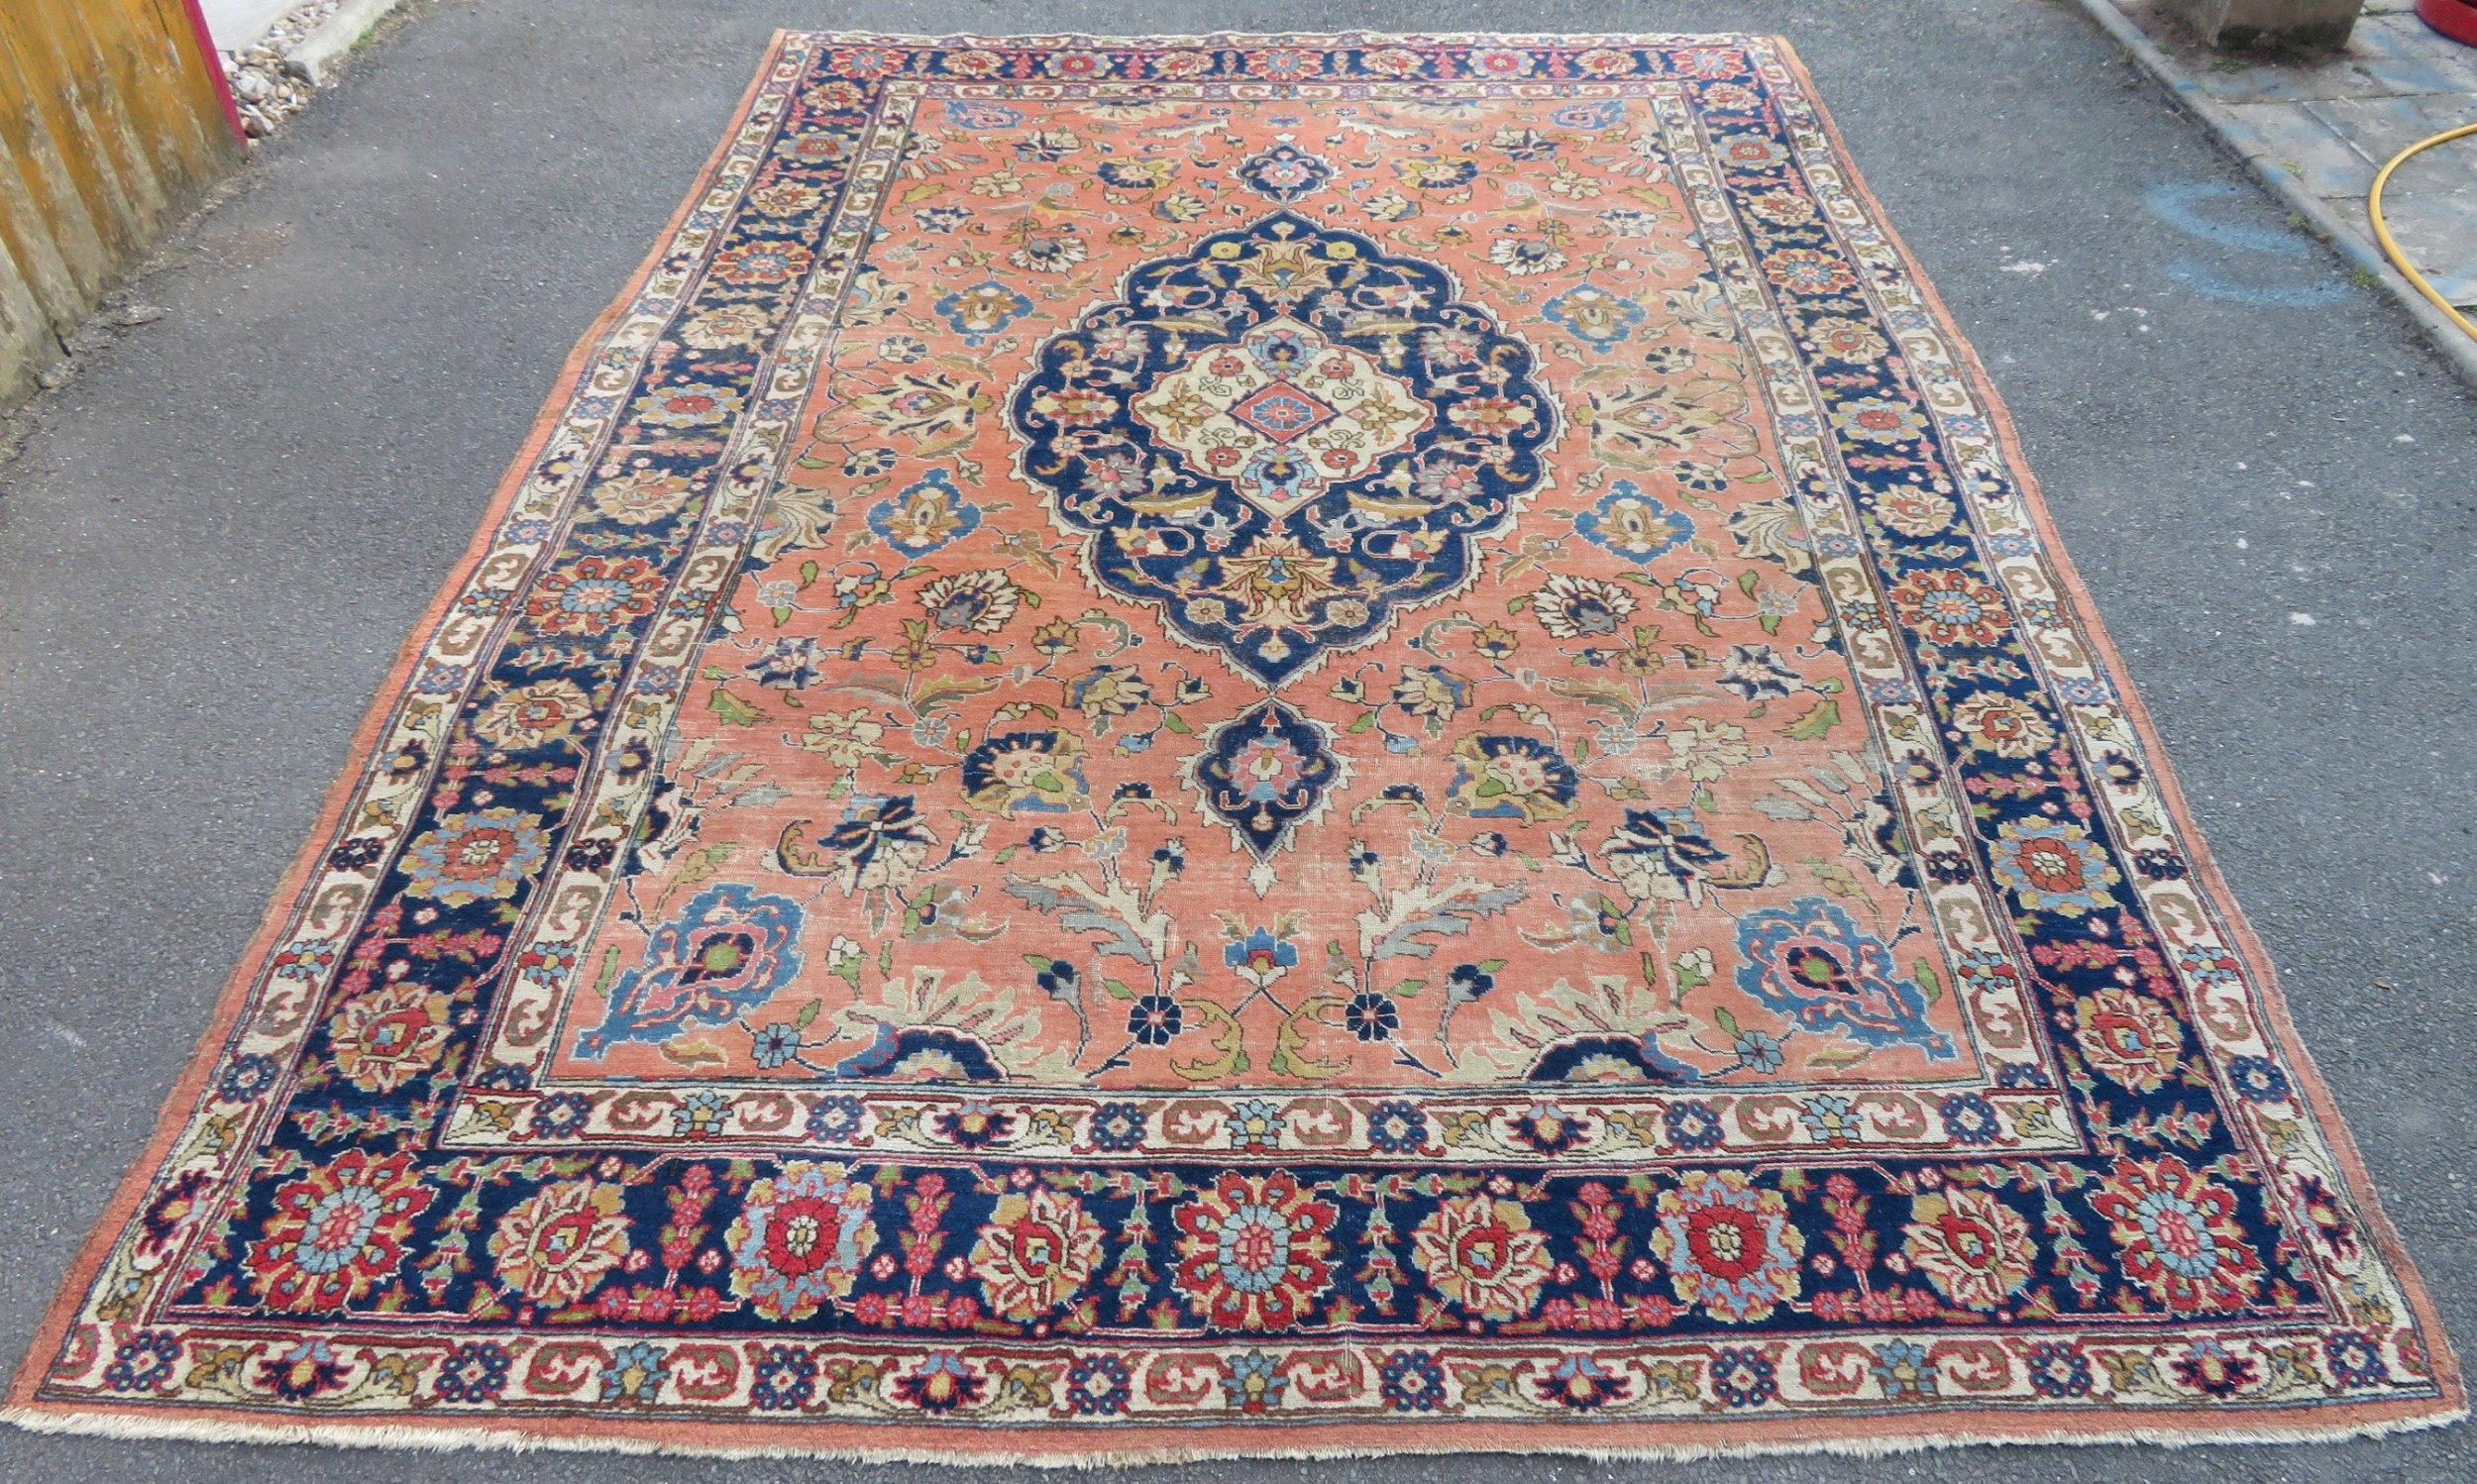 antique country house shabby chic north west persian tabriz carpet large rug 317cm x 232cm room size